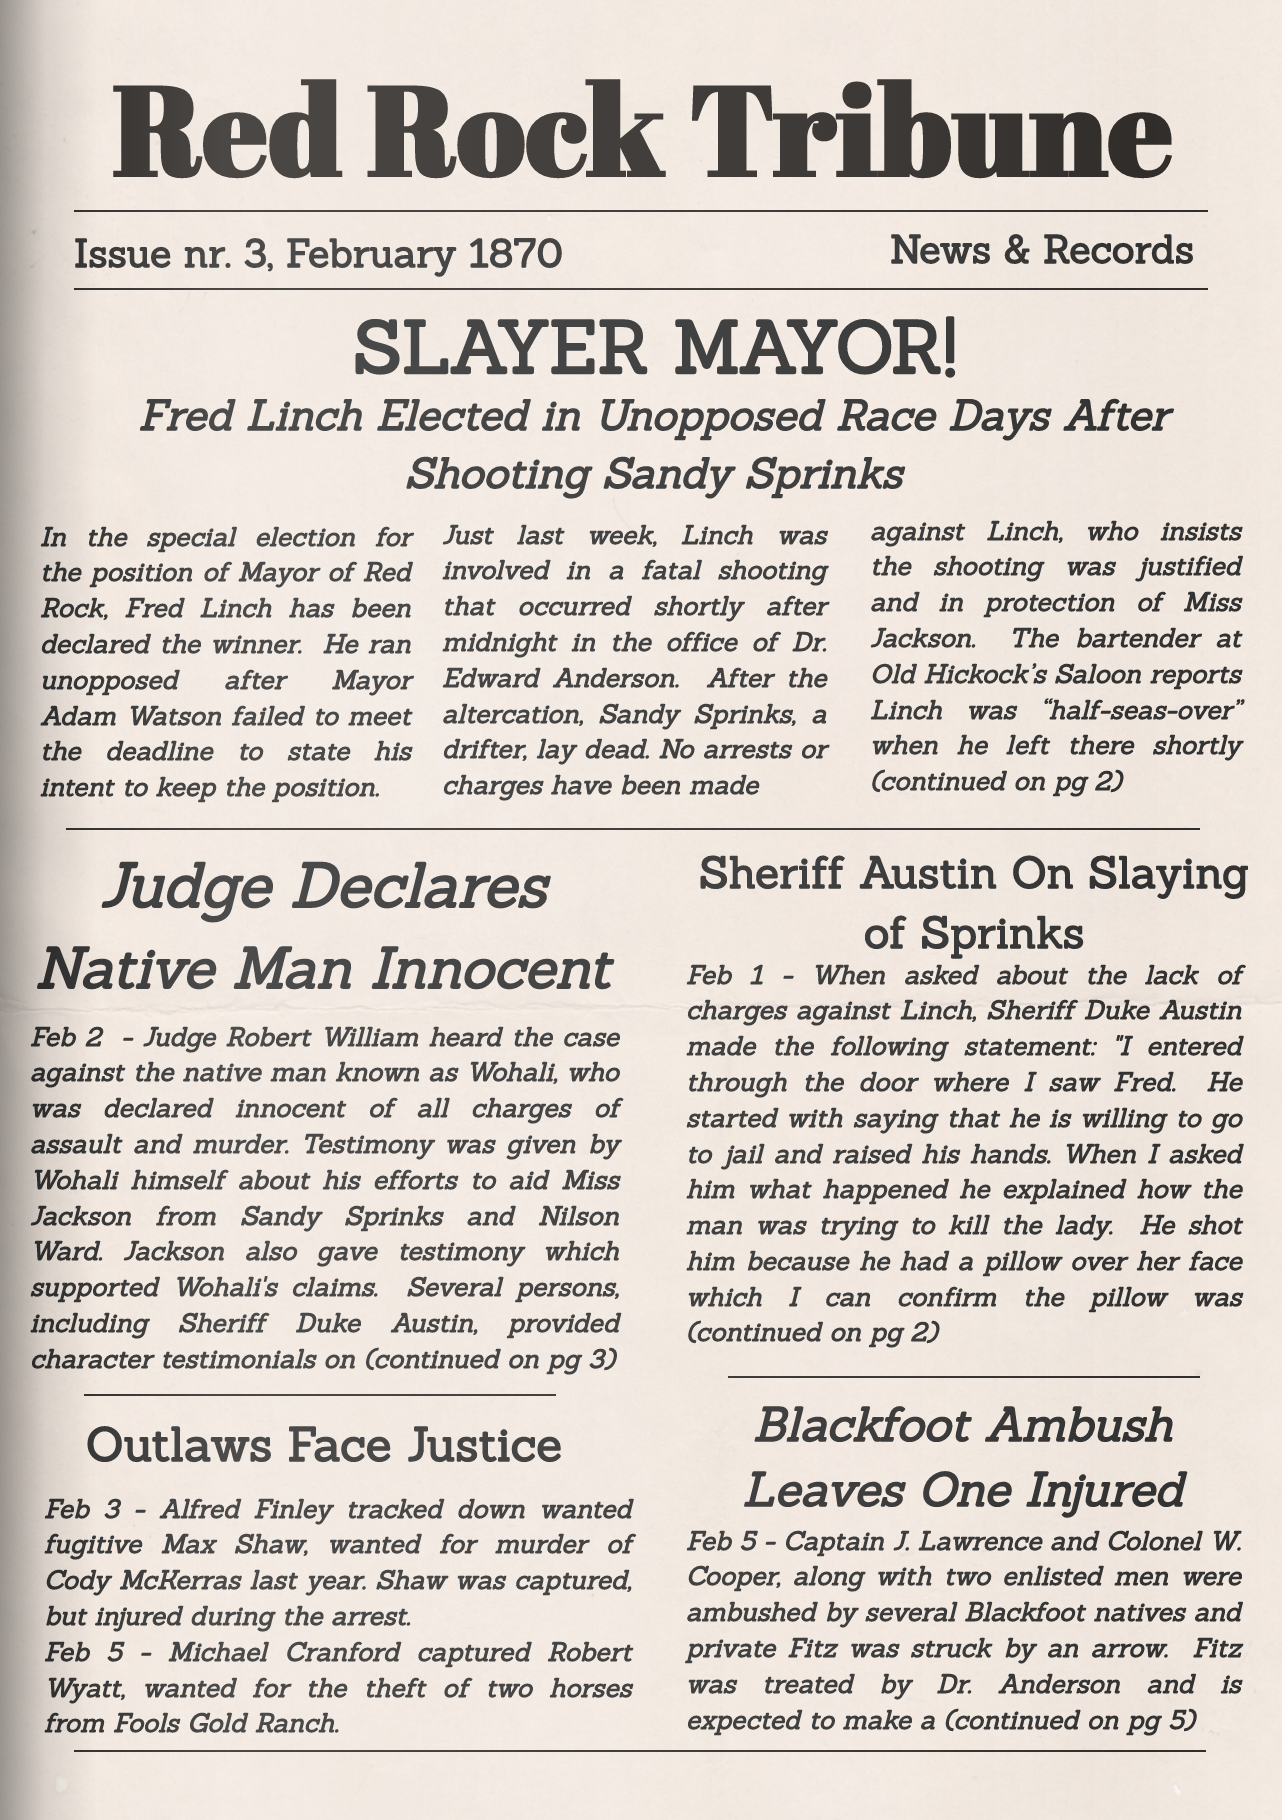 RRT_Issue3_FrontPage.png